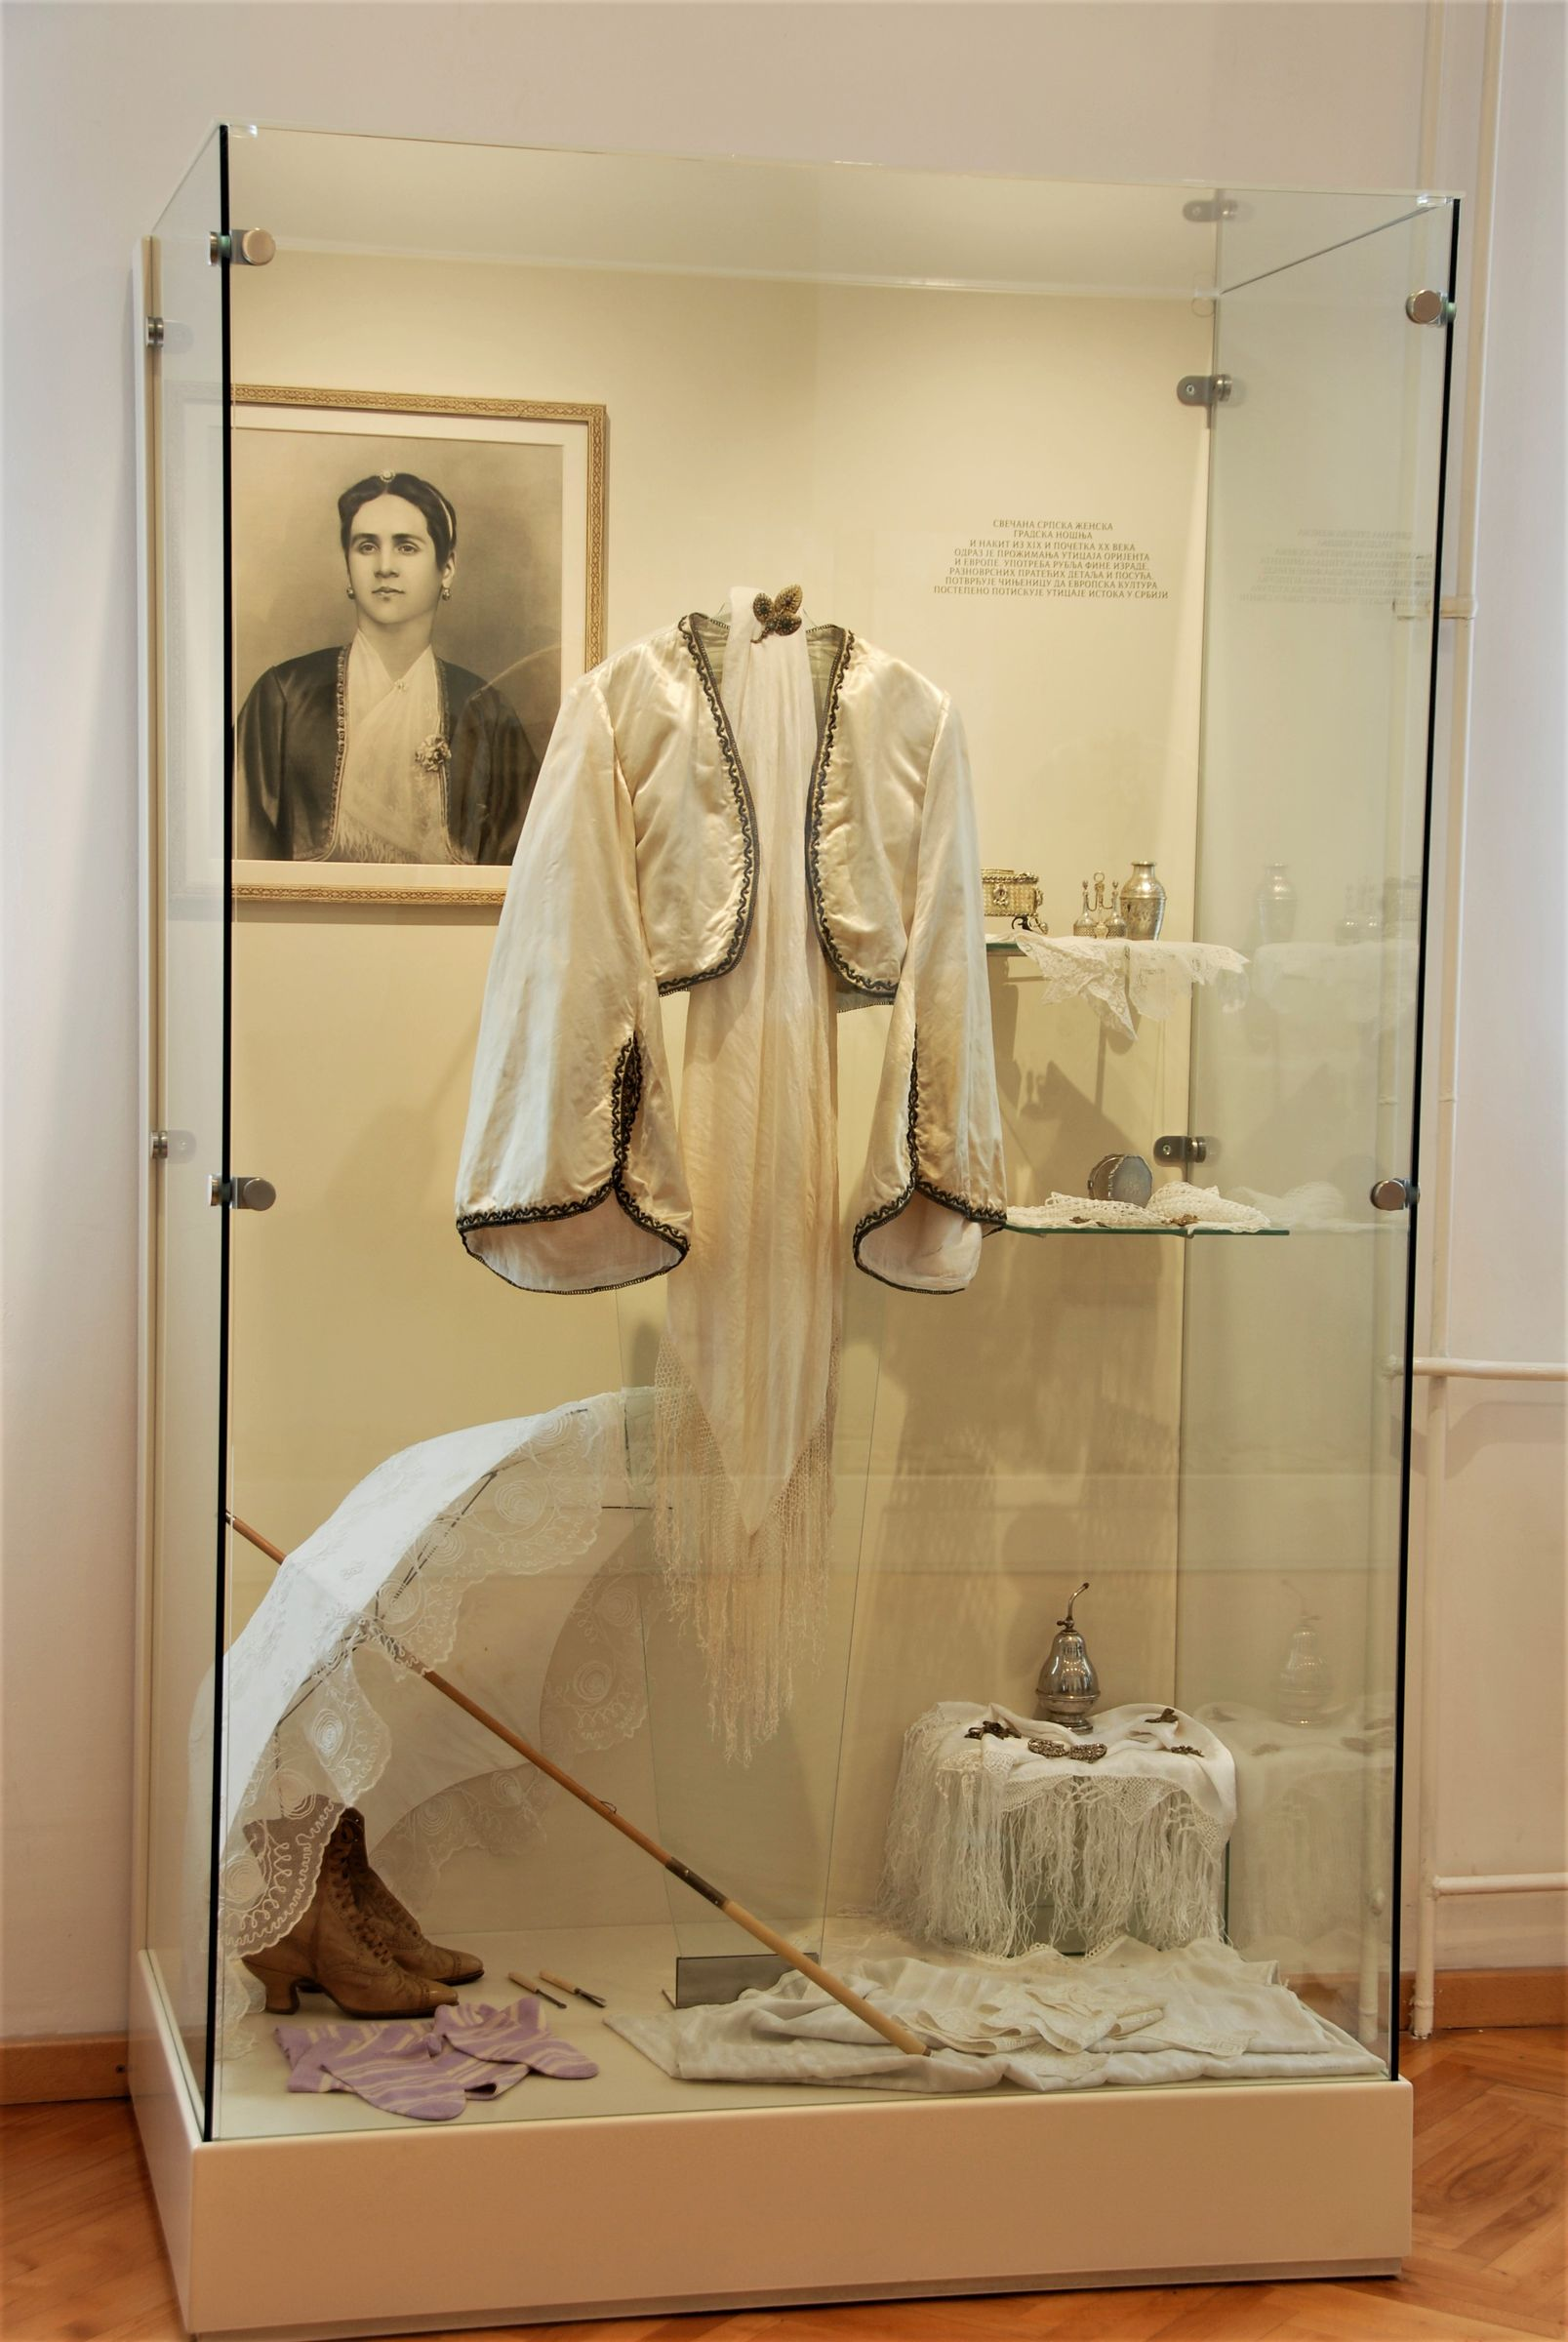 Display case with women's costume from the beginning of the 20th century